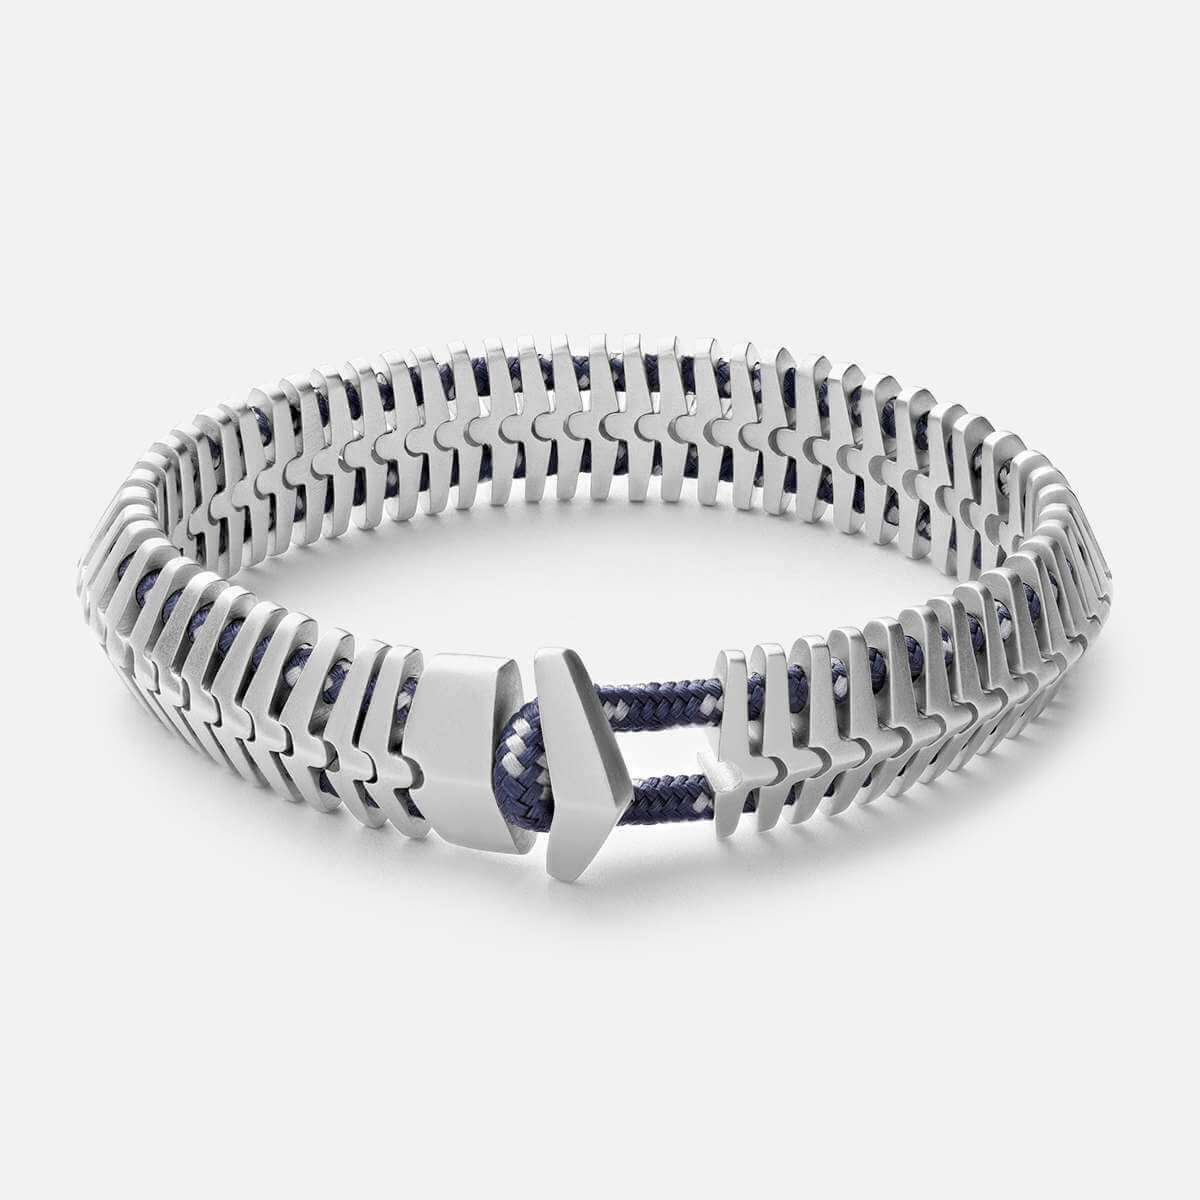 Men's bracelets redefine the Fashion